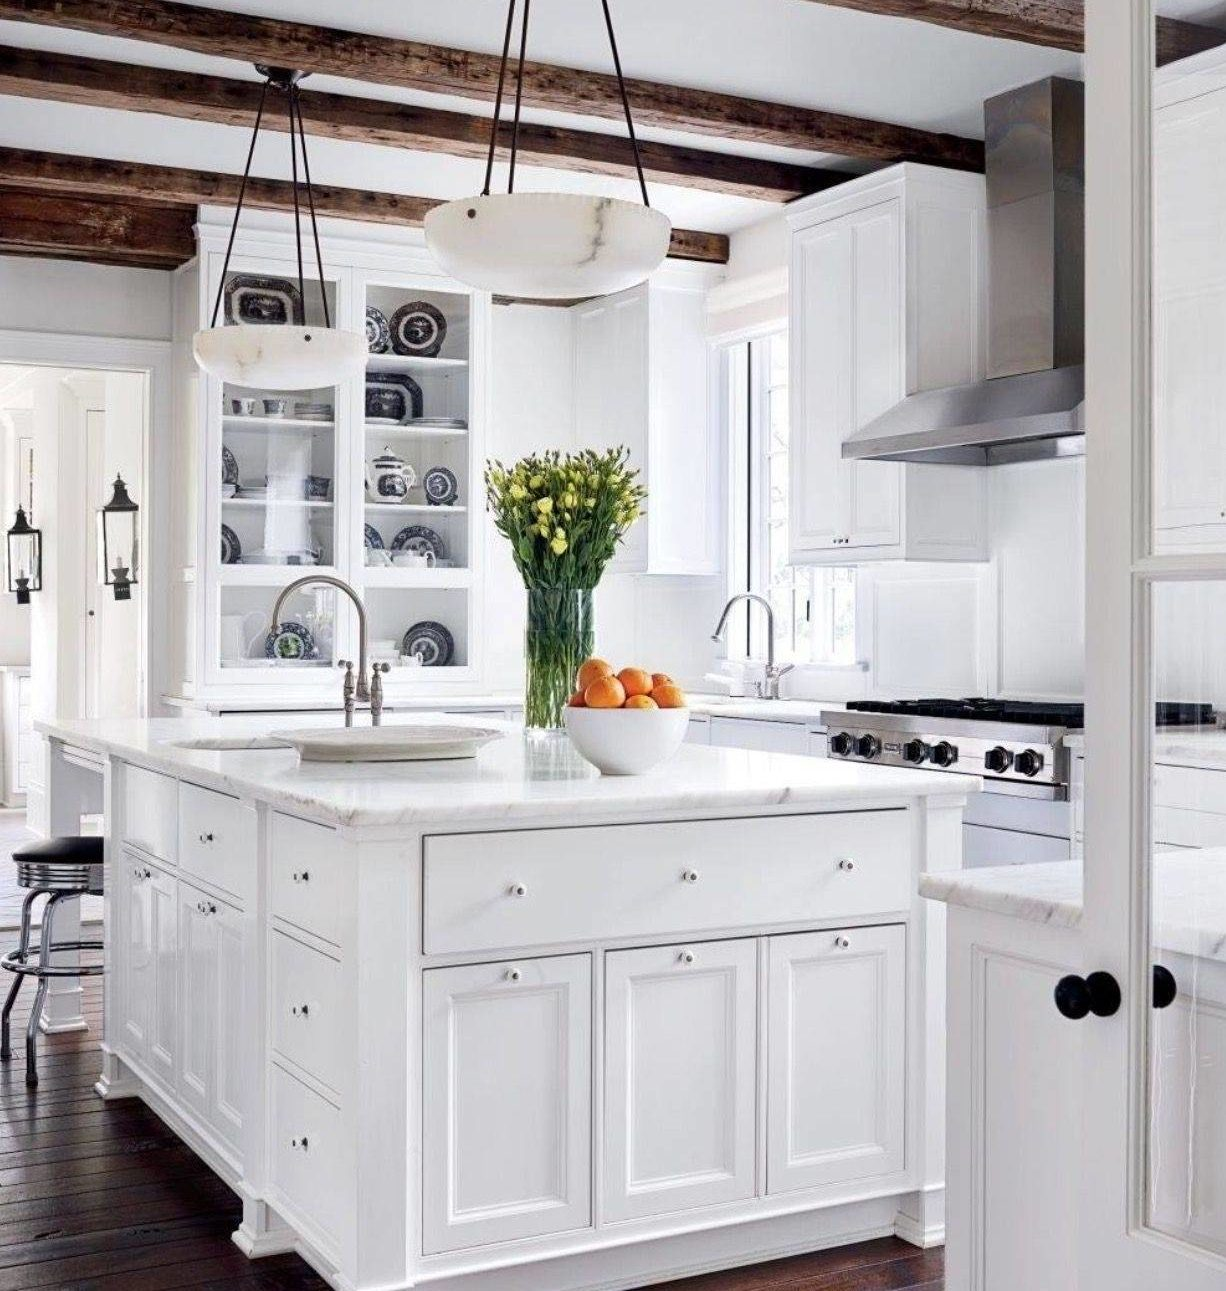 Modern Clean White Farmhouse Inspired Rustic Decor Kitchen